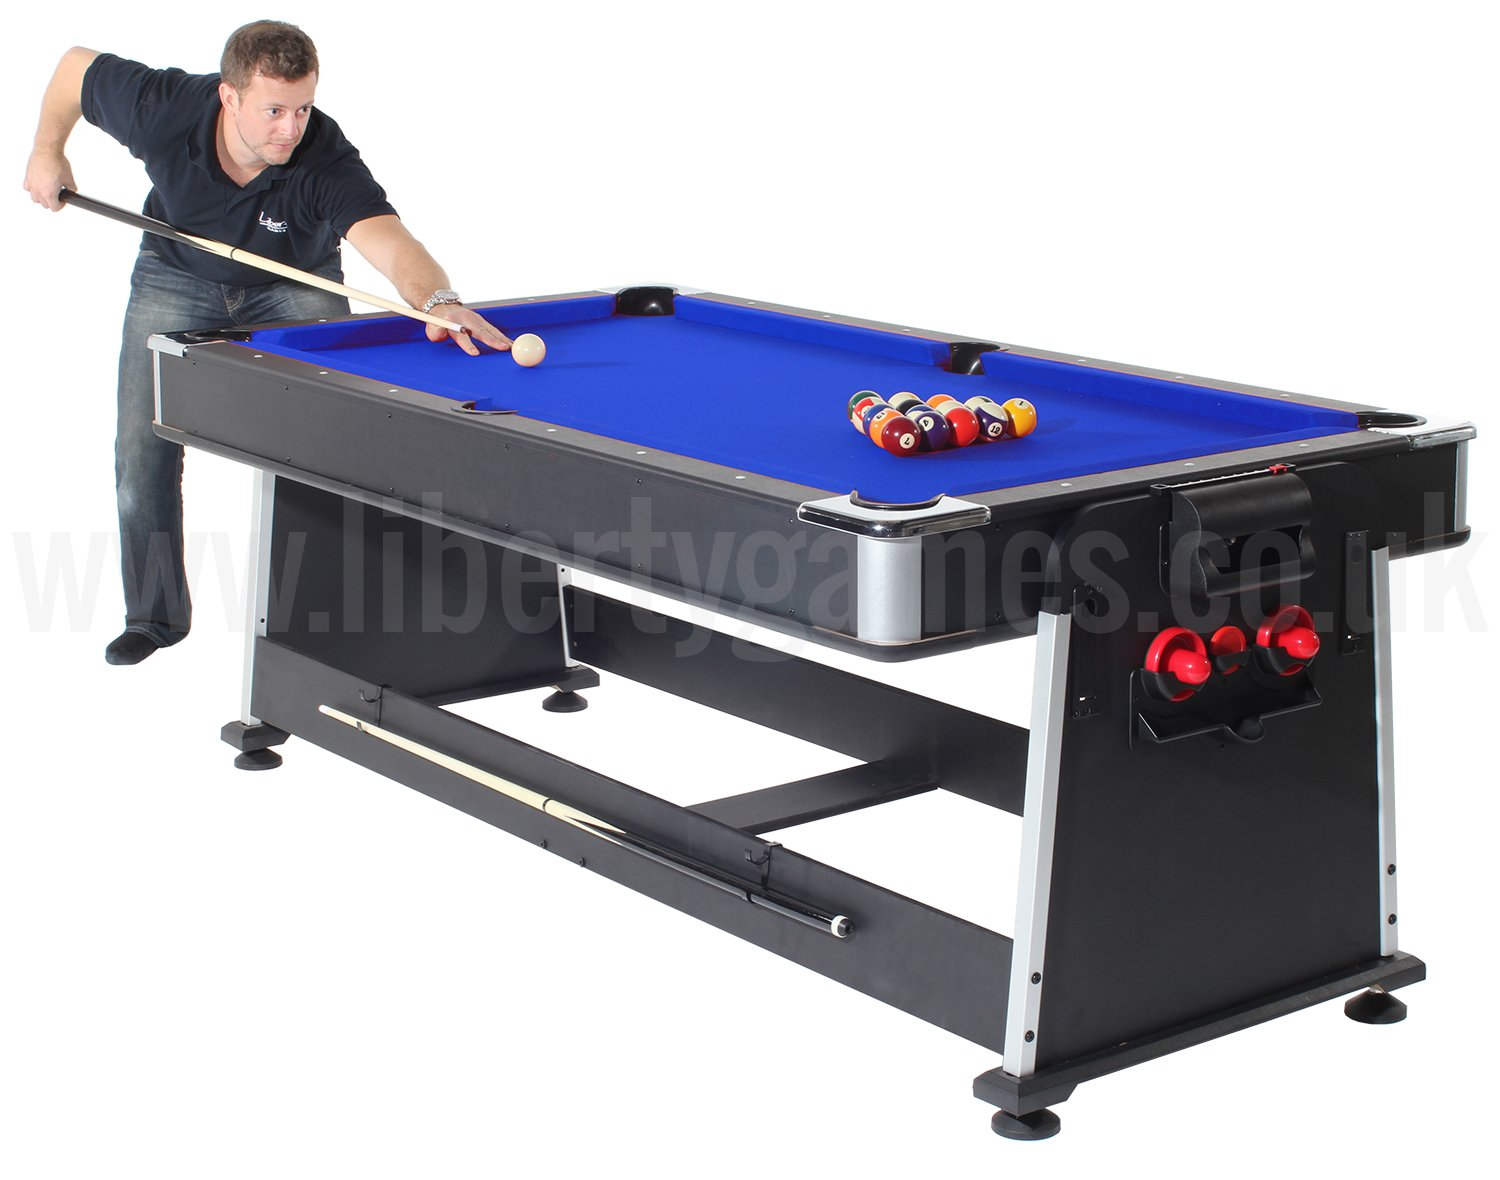 Strikeworth multi games table with blue cloth liberty games for 10 in 1 pool table